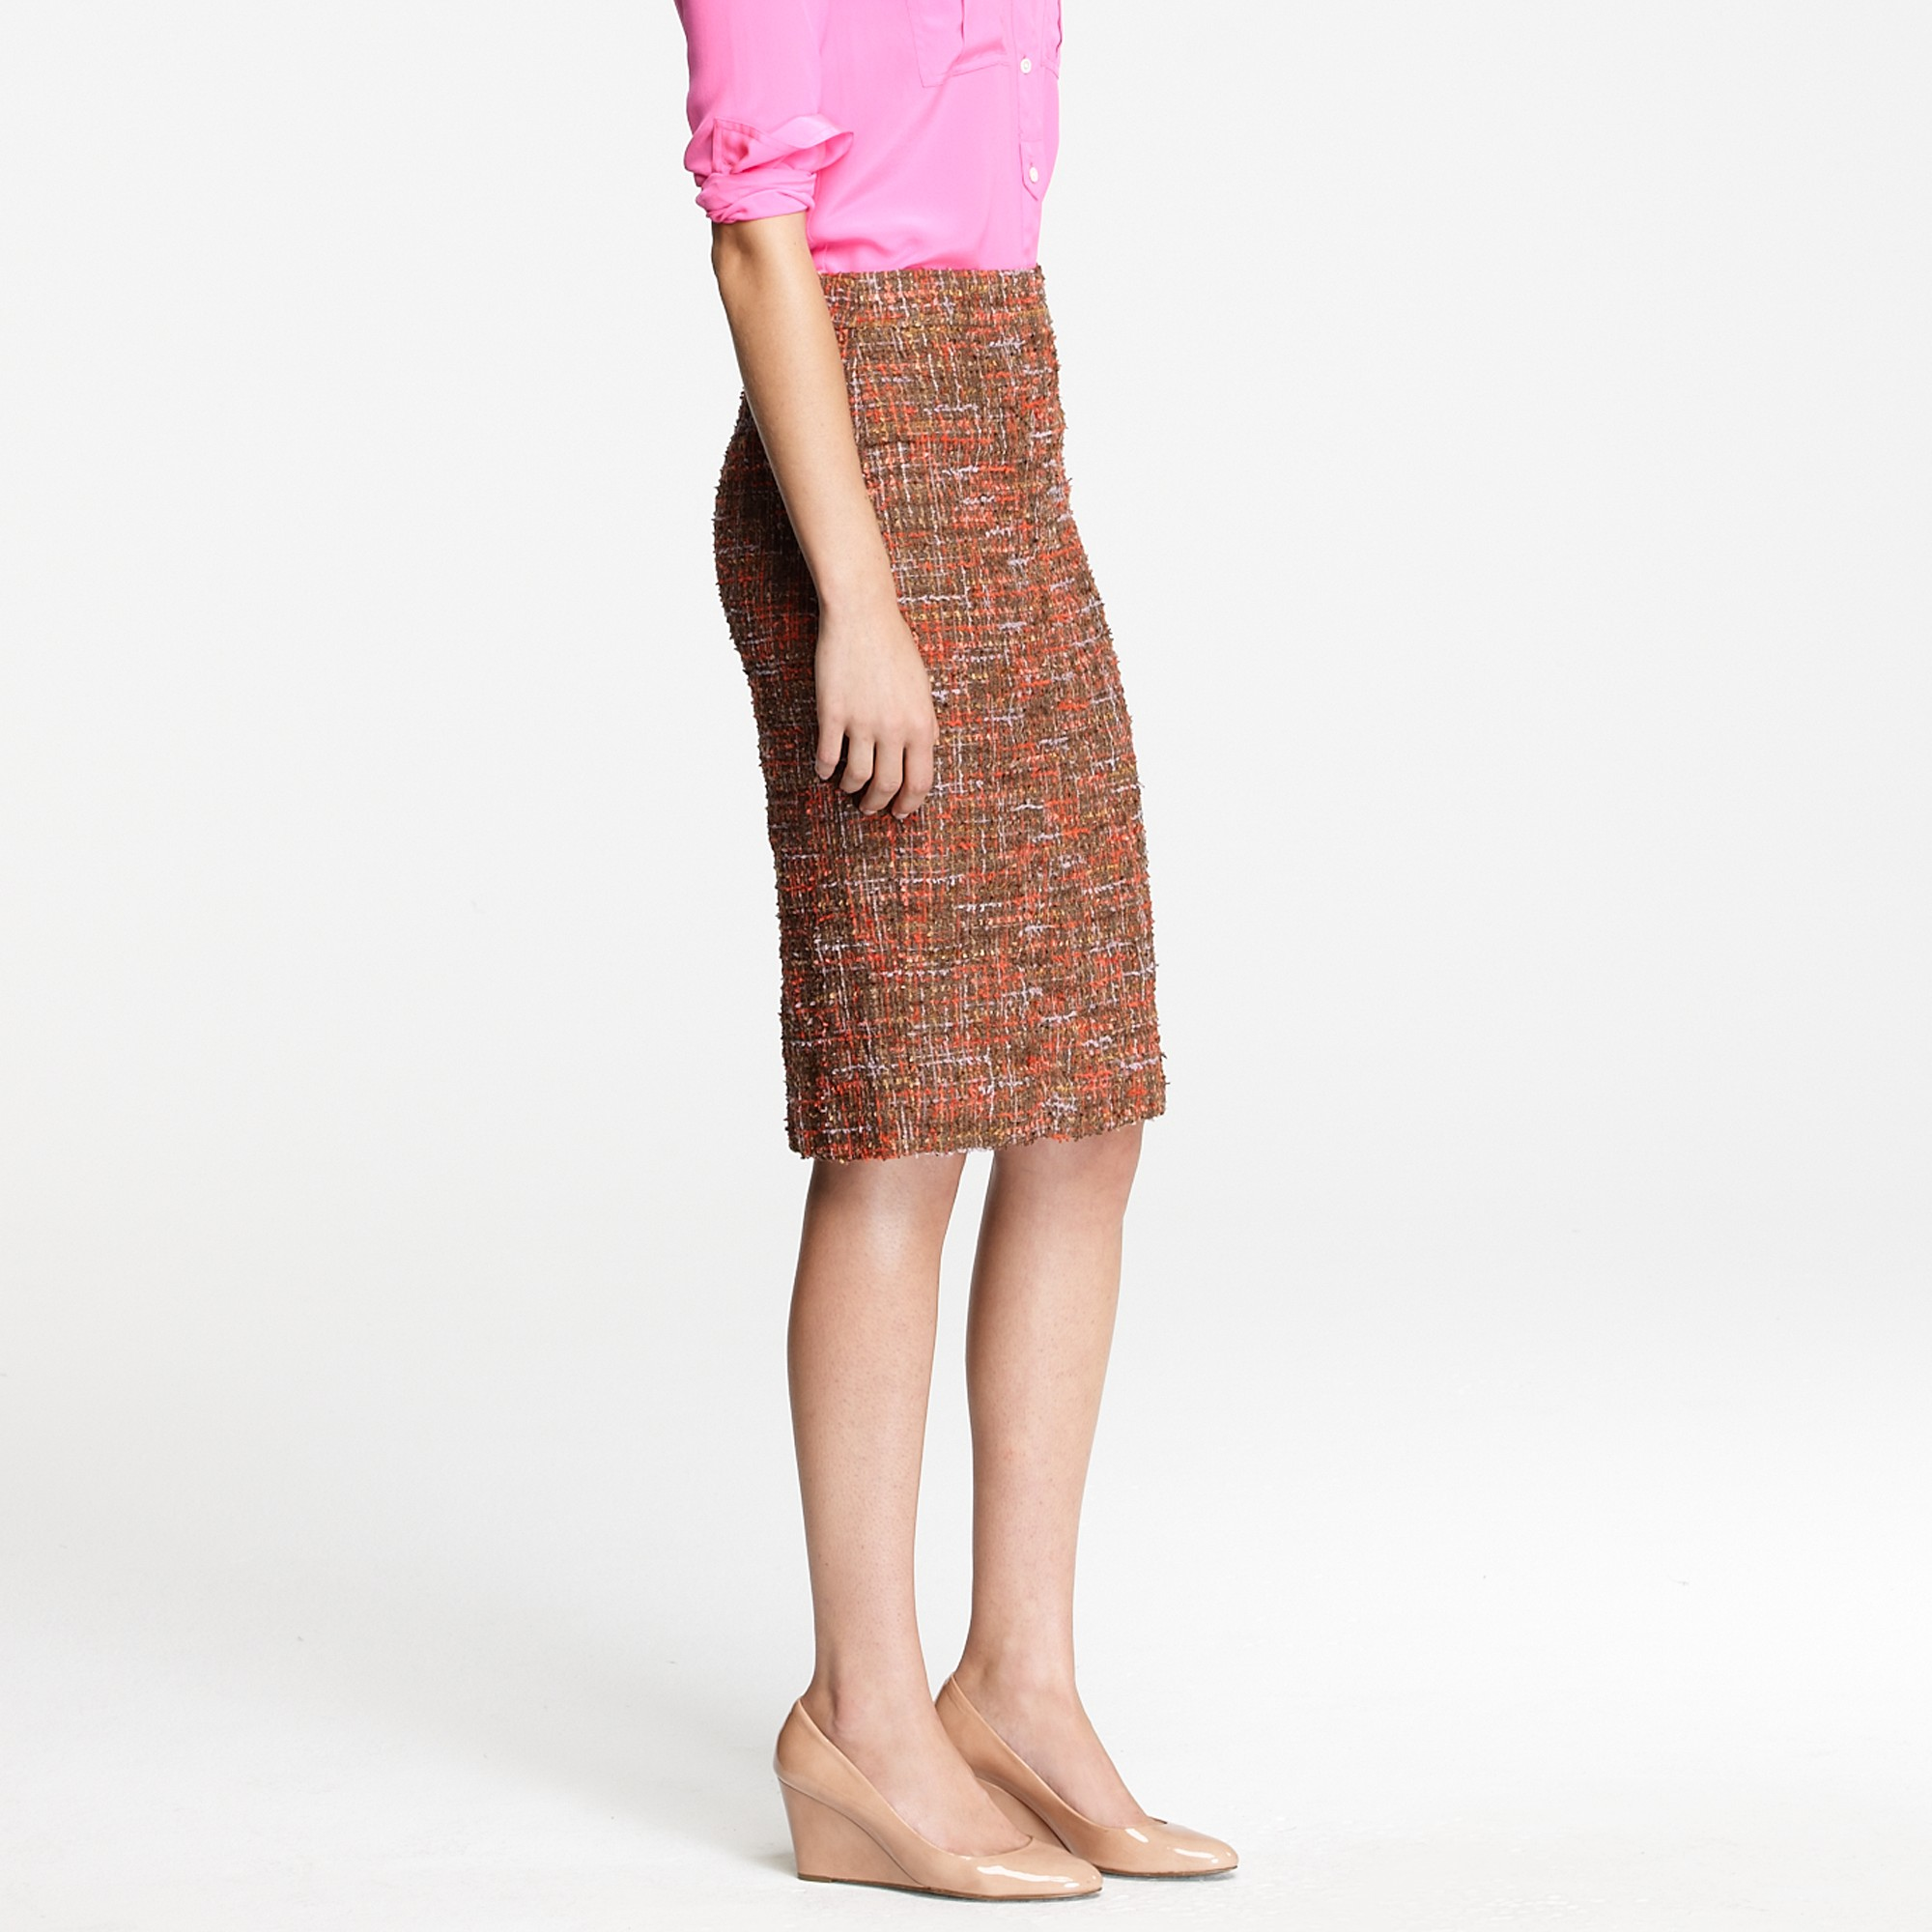 00e71e79f J.Crew No. 2 Pencil Skirt in Harvest Tweed in Brown - Lyst